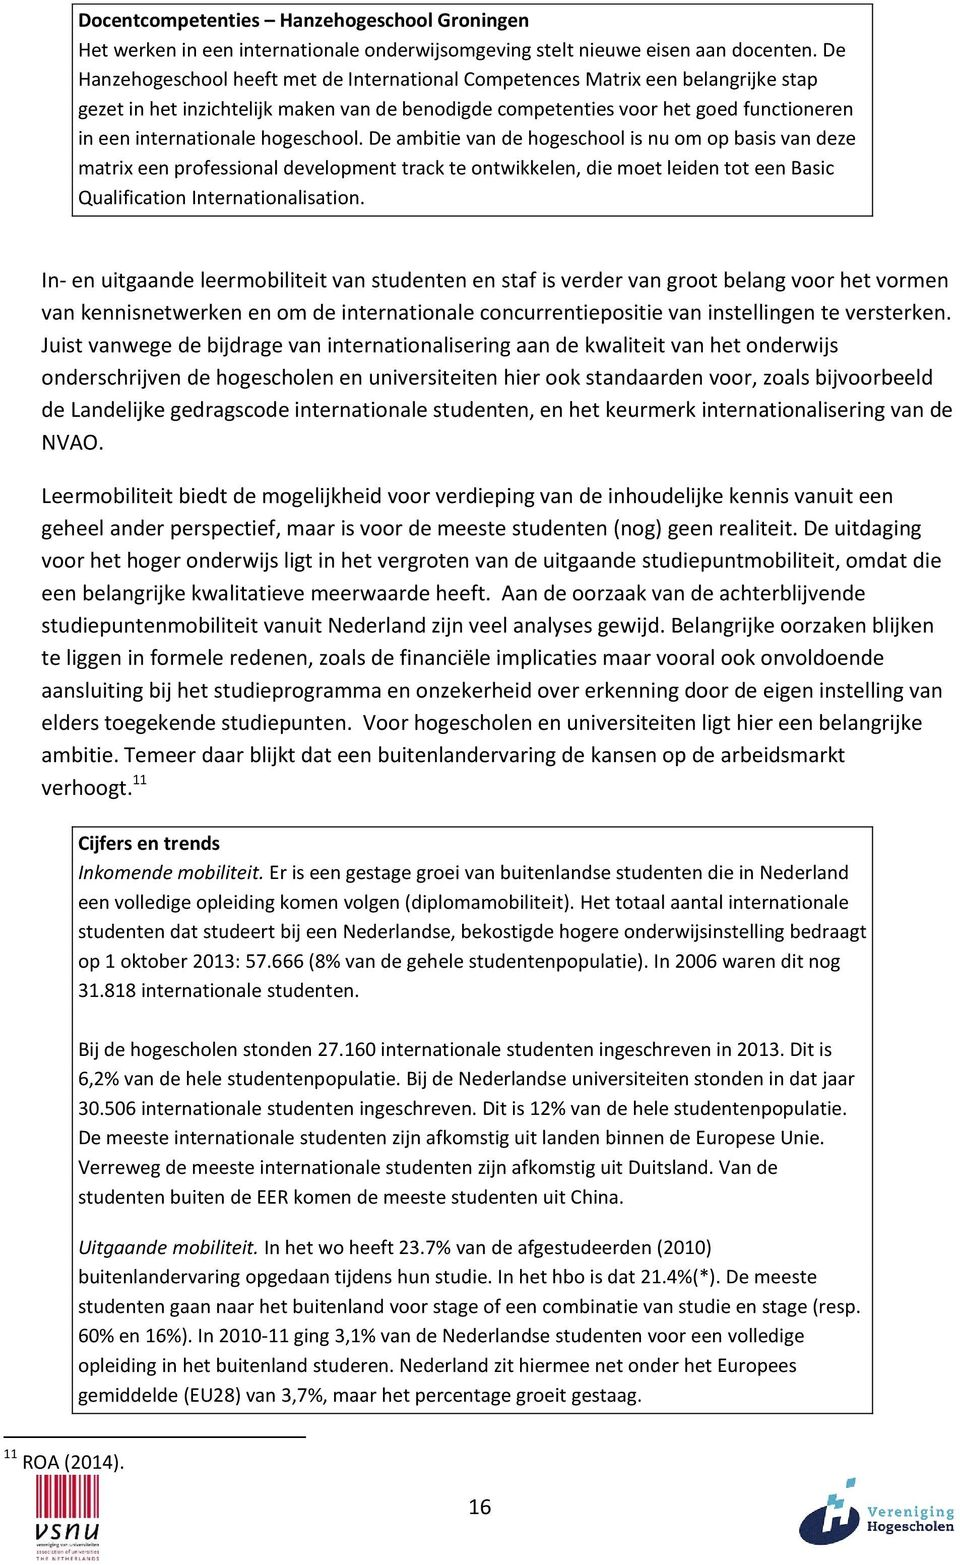 hogeschool. De ambitie van de hogeschool is nu om op basis van deze matrix een professional development track te ontwikkelen, die moet leiden tot een Basic Qualification Internationalisation.